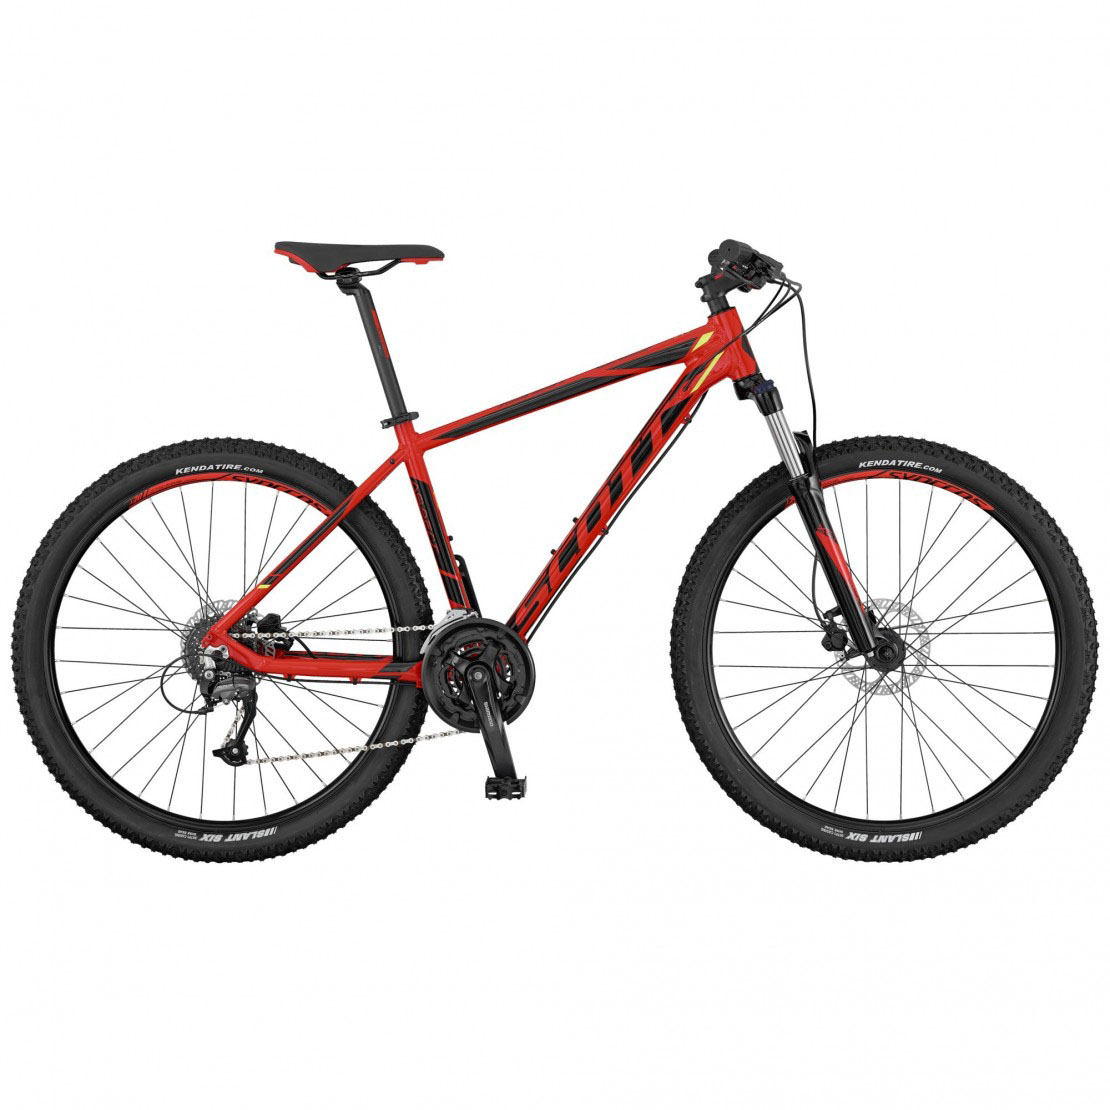 Aspect 950 2017 - 29er Mountain Bike